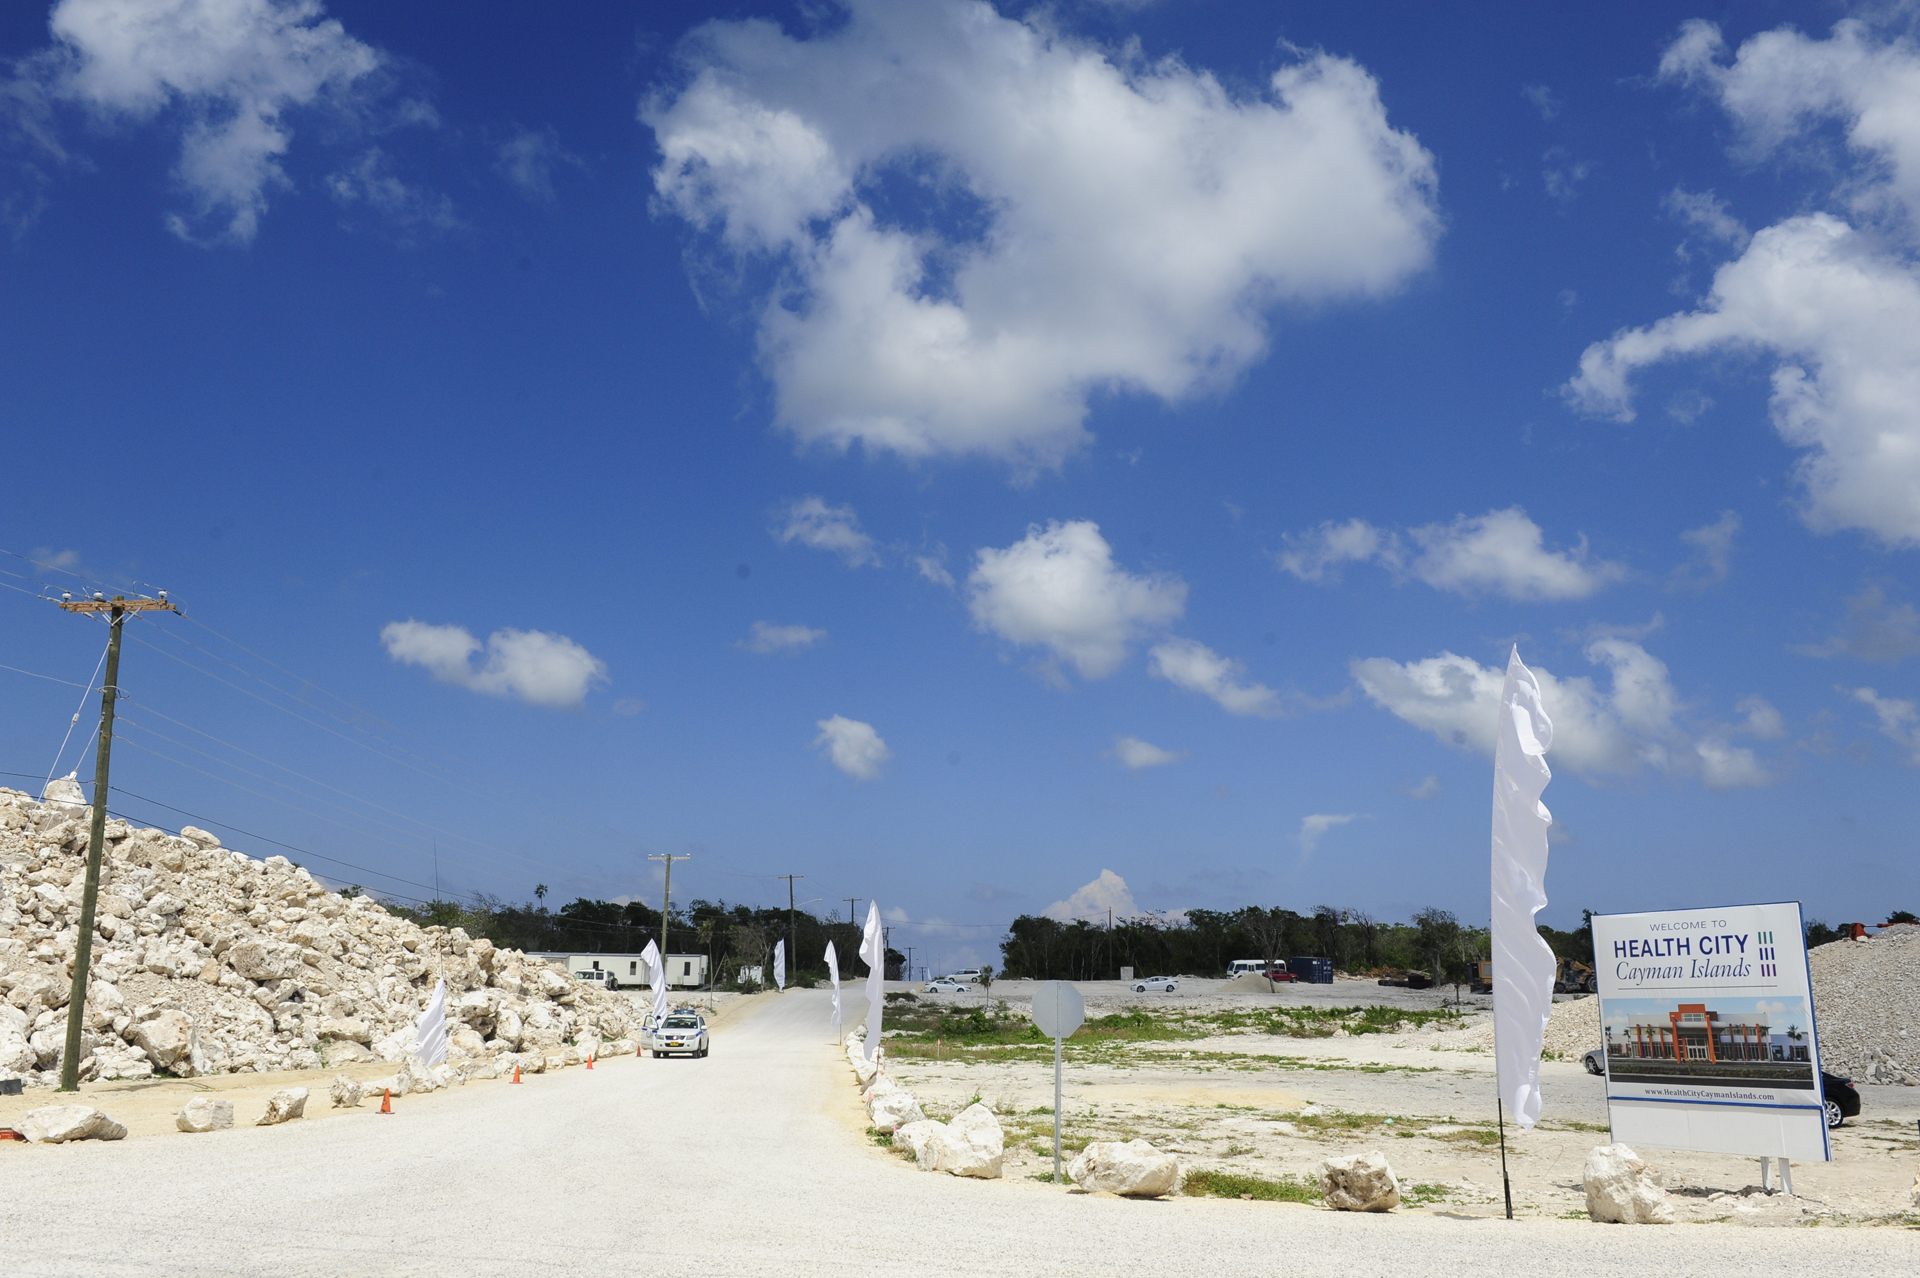 The beginning of Health City Cayman Islands